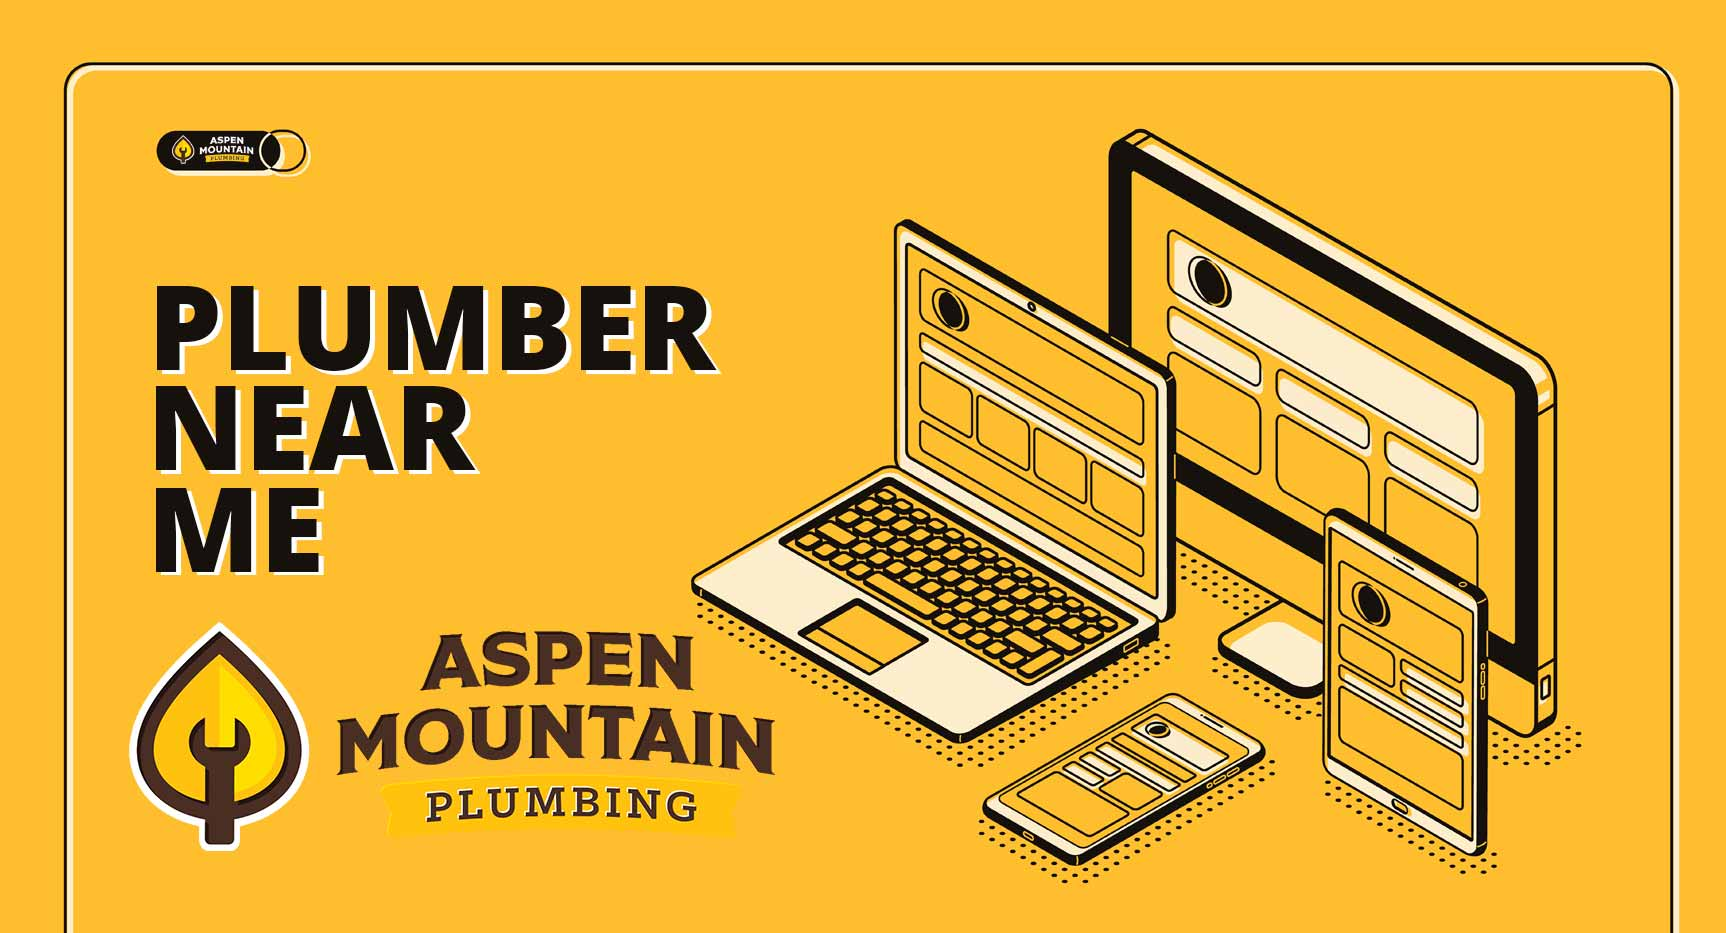 Lance Ball, owner of Aspen Mountain Plumbing, shows you how we put our customers first when it comes to plumbing.